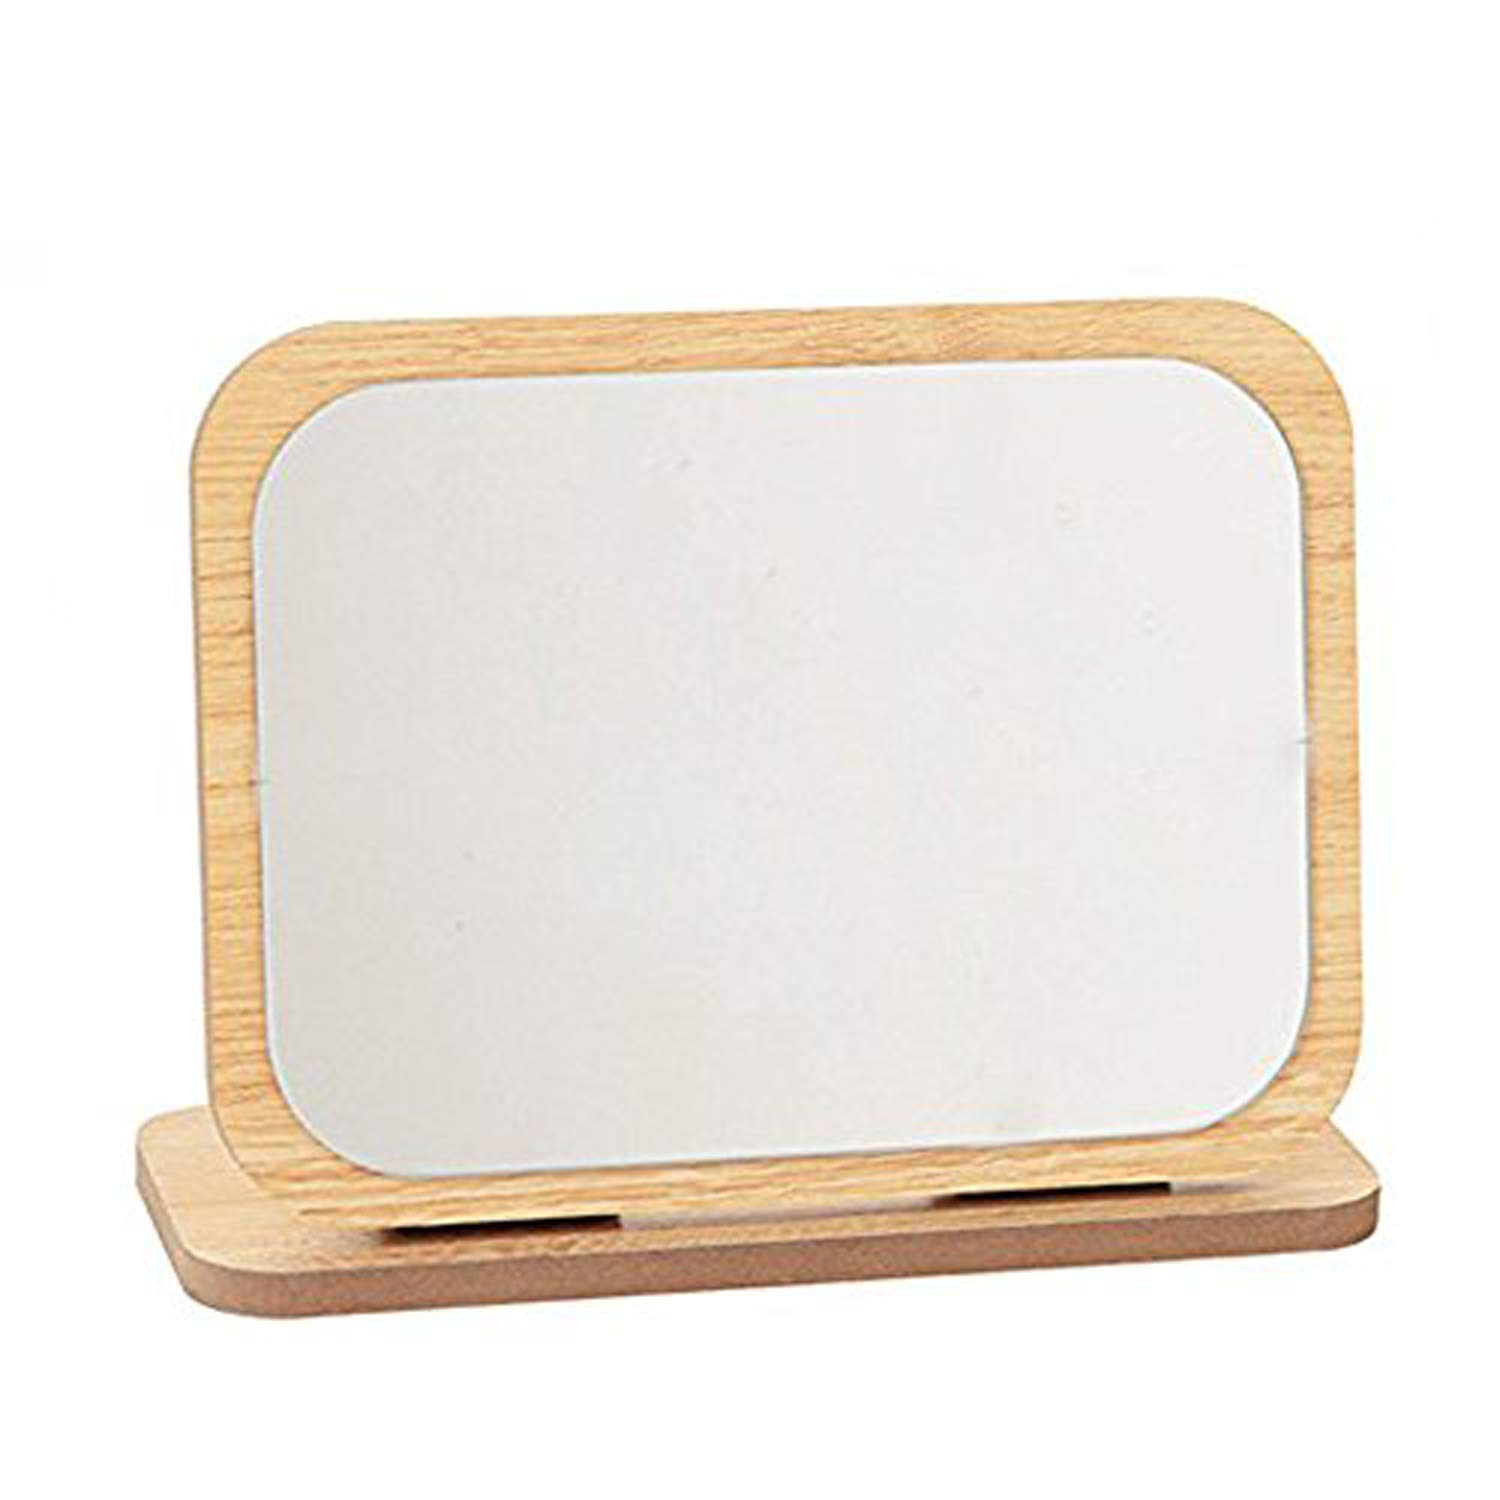 GOHIDE High Definition Cosmetic Mirror Wooden HD Makeup Mirror Simple Beauty Mirror Dressing Folding Simple Portable Large Desktop